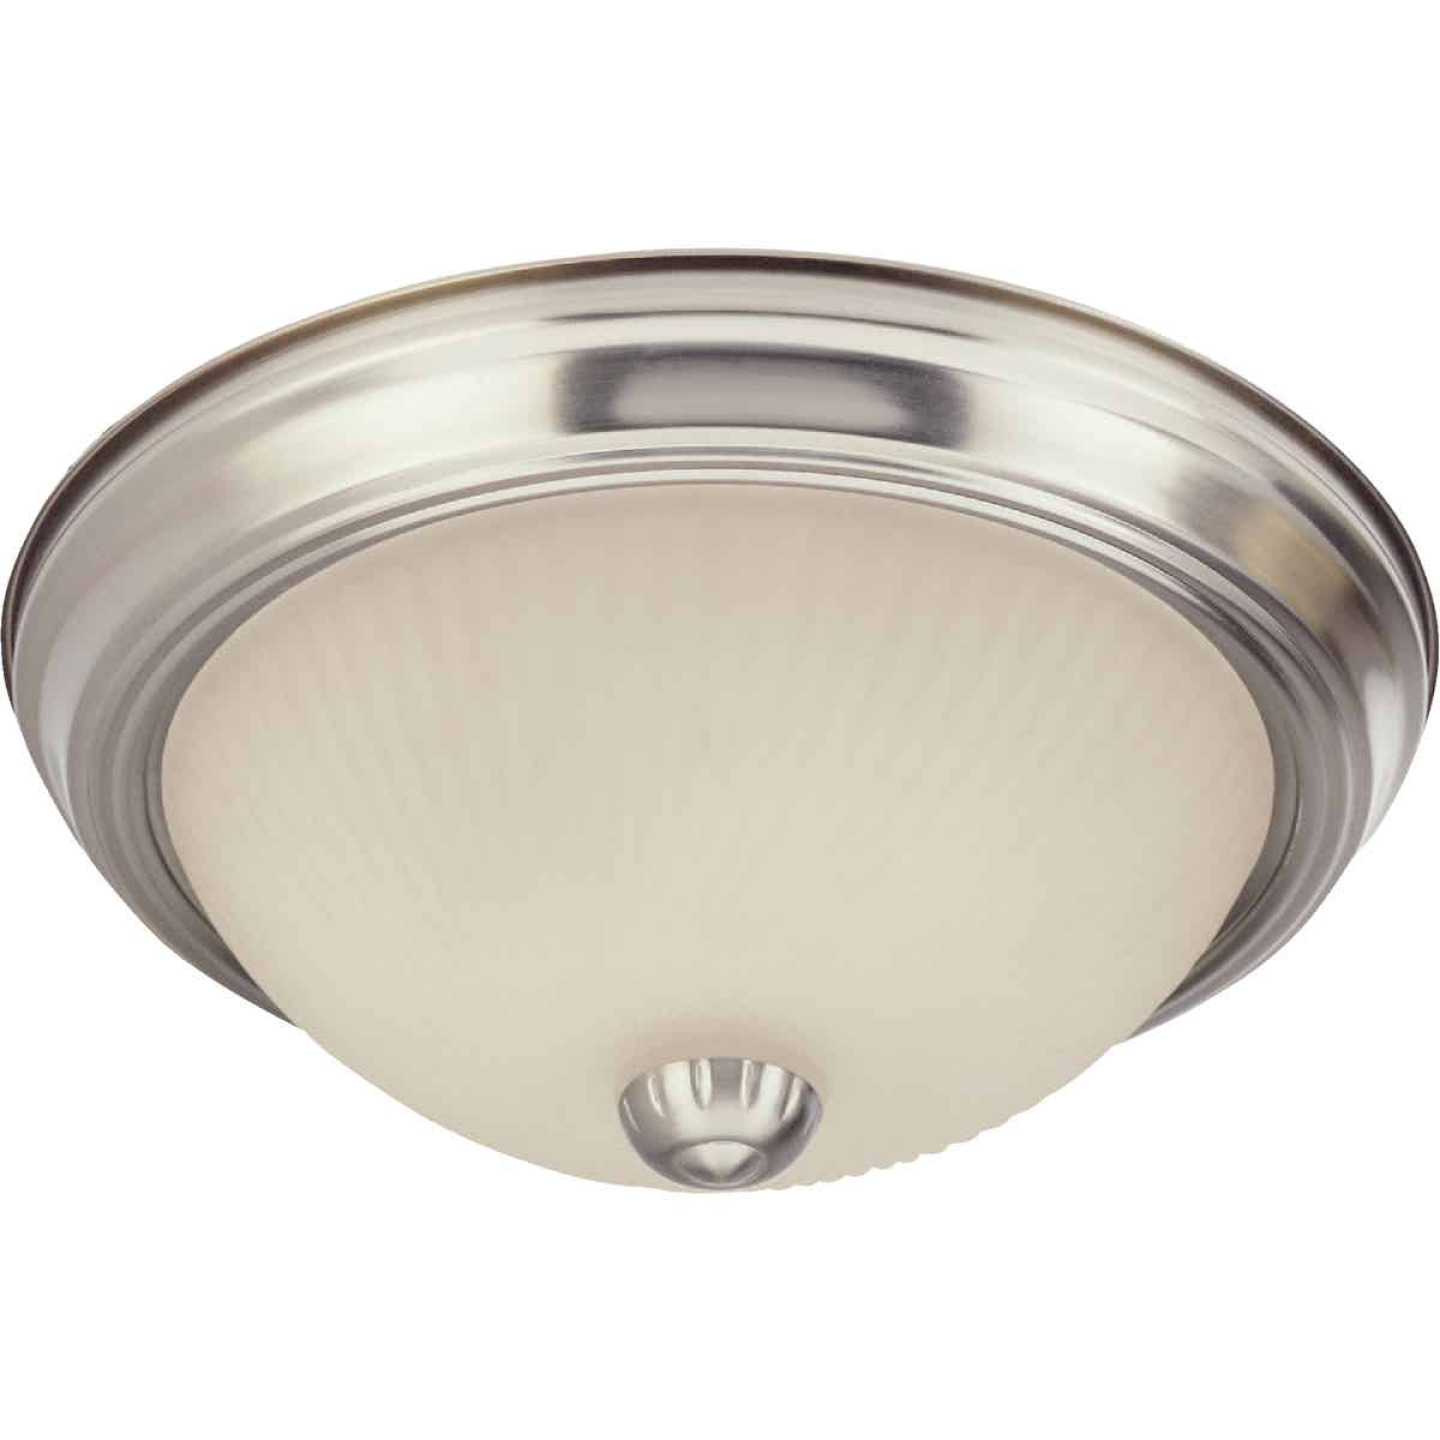 Home Impressions 11 In. Brushed Nickel Incandescent Flush Mount Ceiling Light Fixture (2-Pack) Image 2